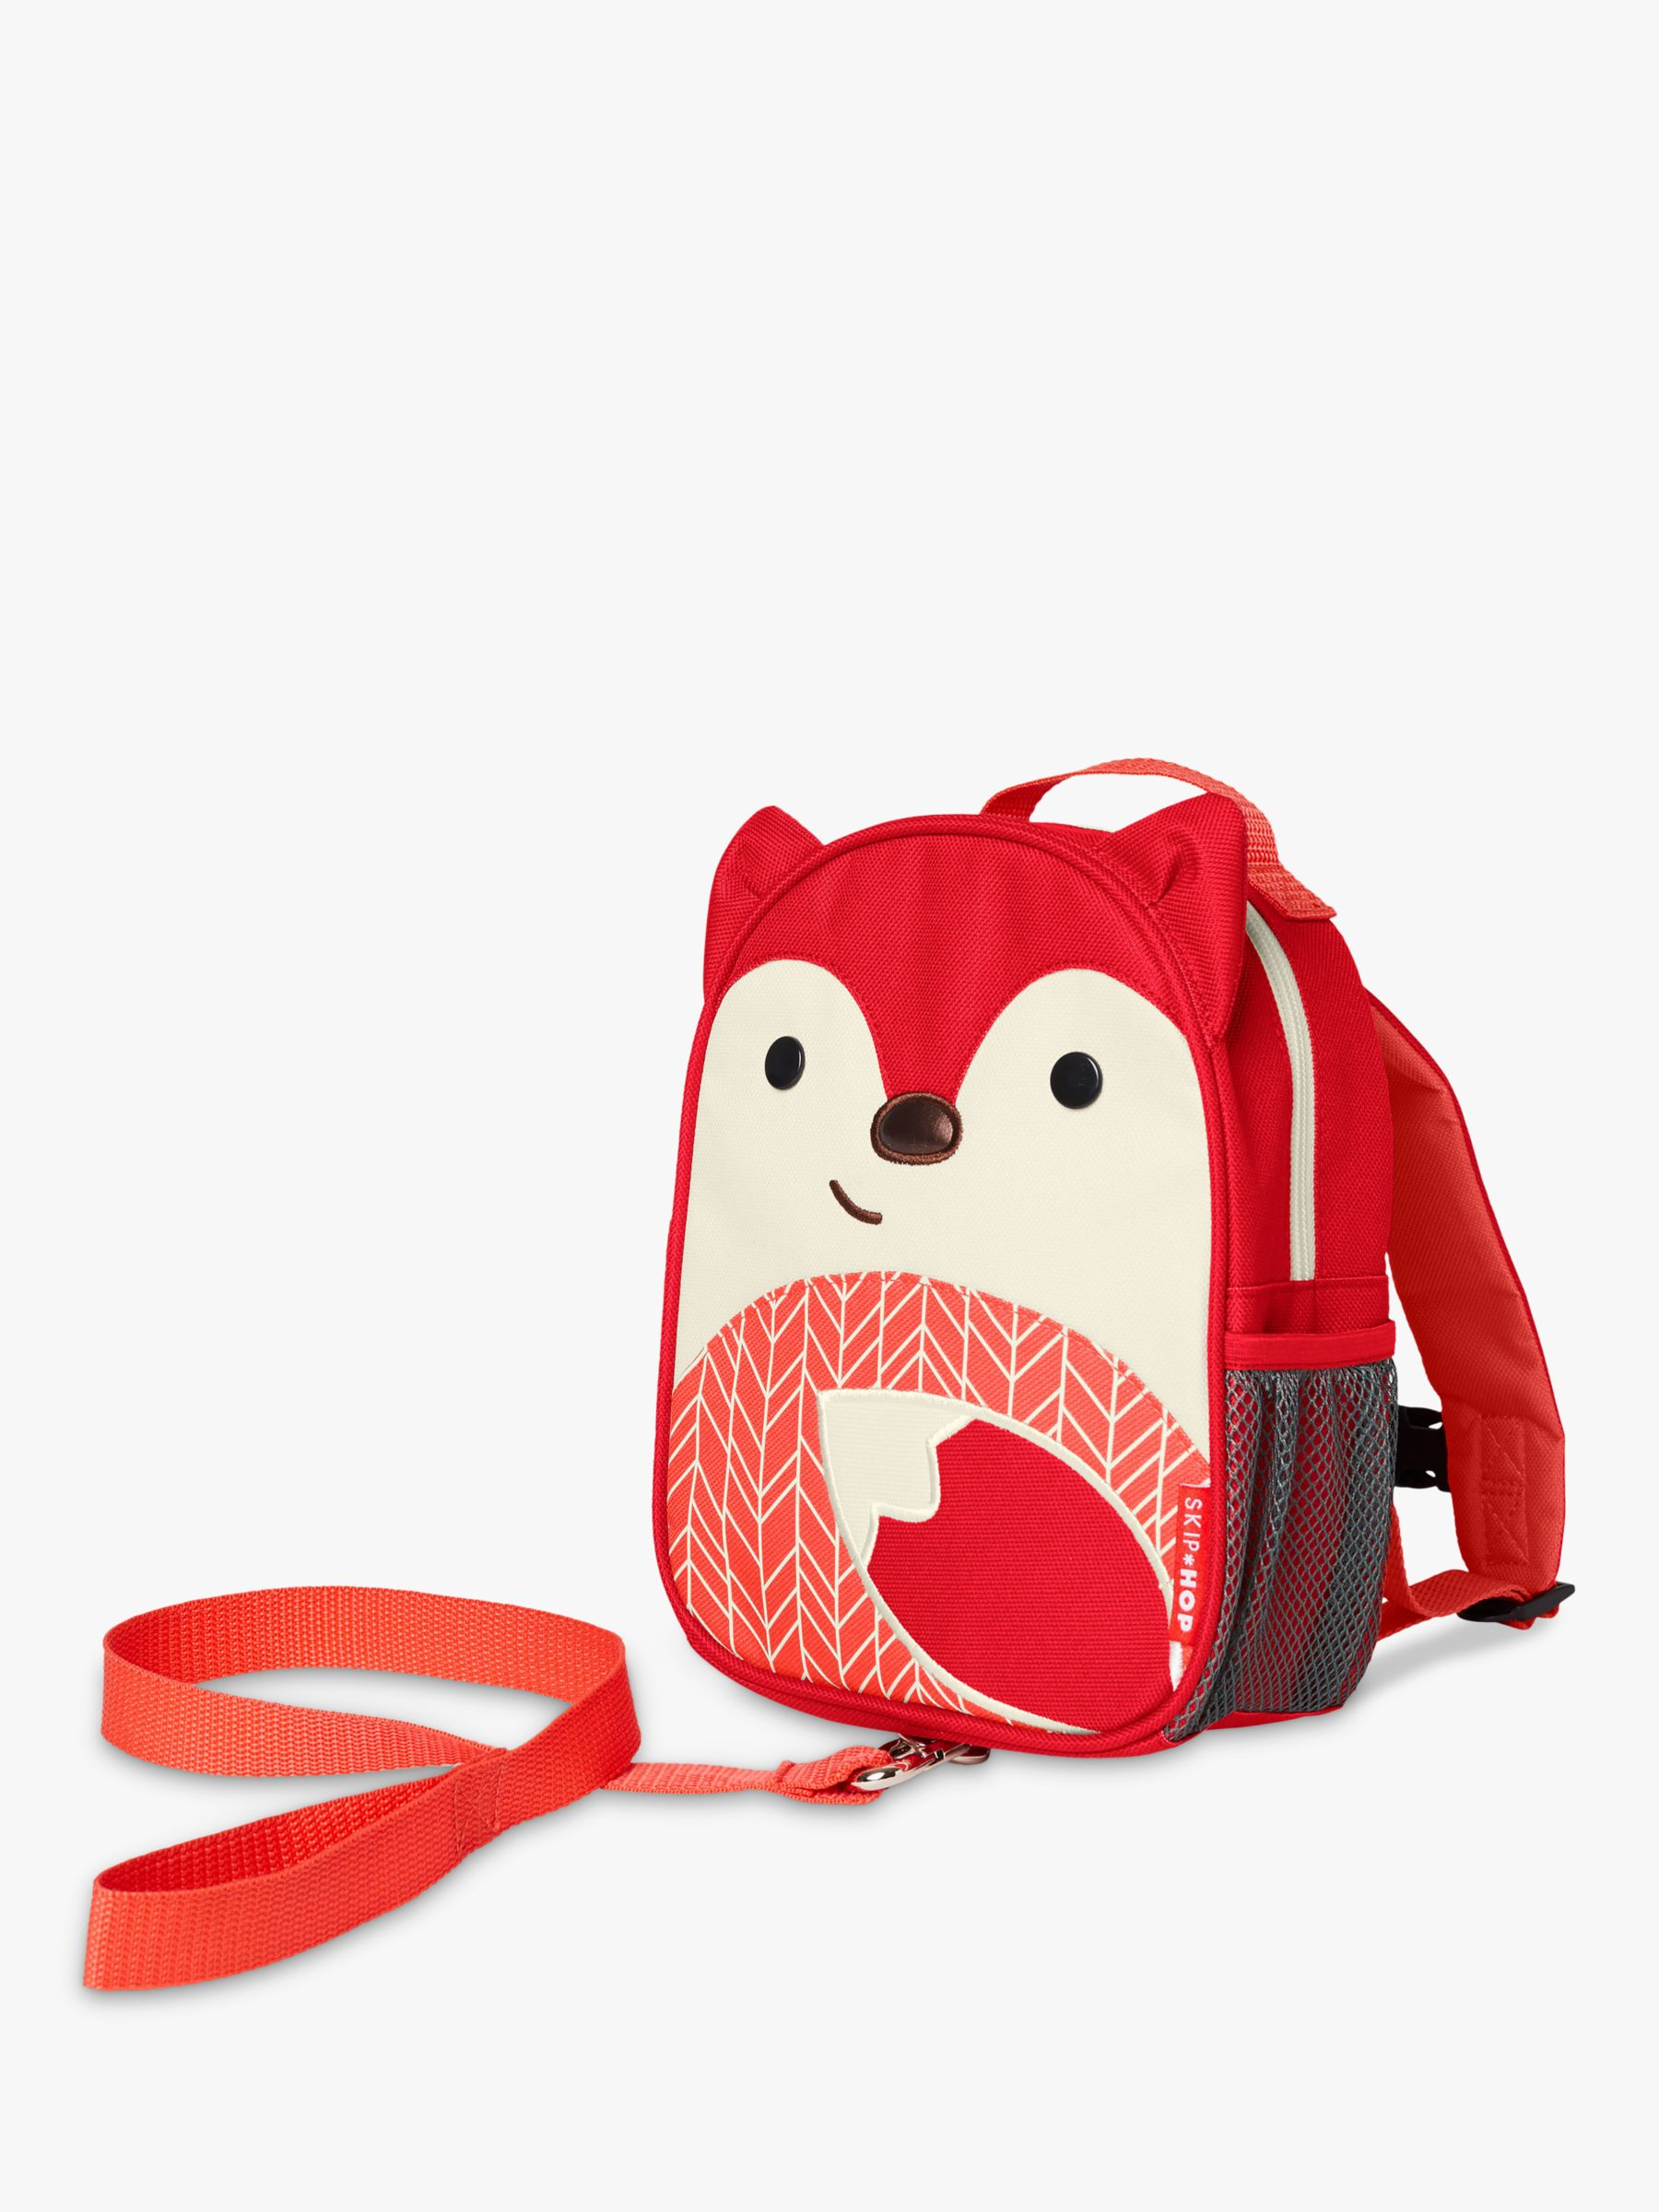 Skip Hop Skip Hop Zoo Let Fox Children's Backpack, Red